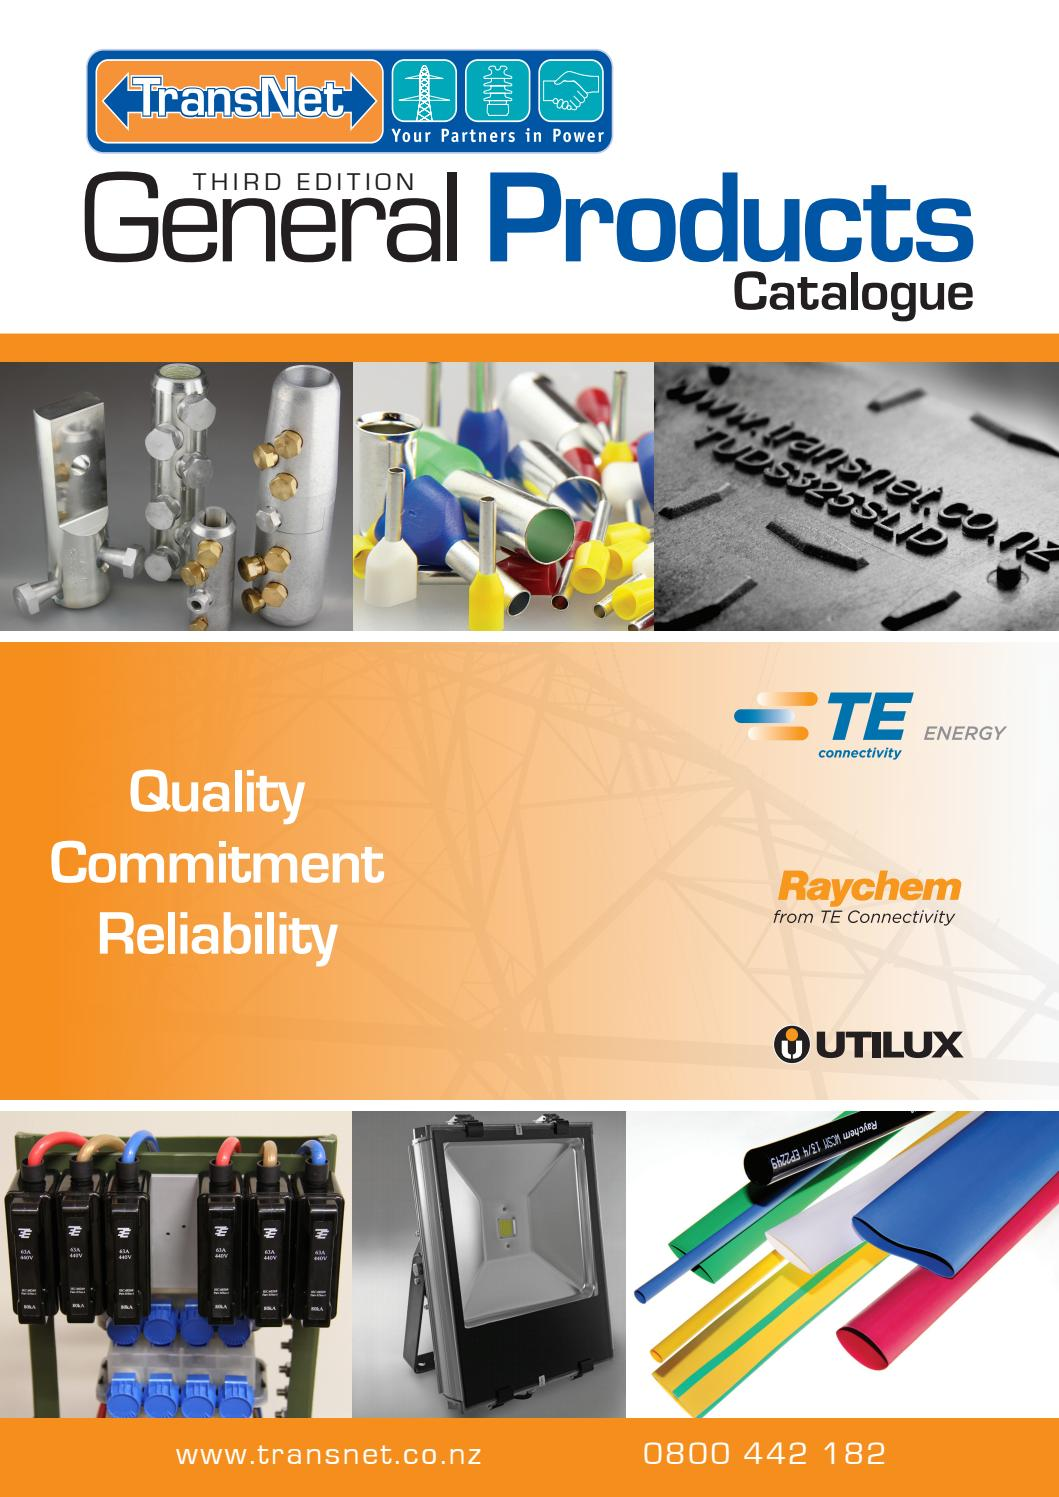 Transnet General Products Catalogue 2013 By Transnet Nz